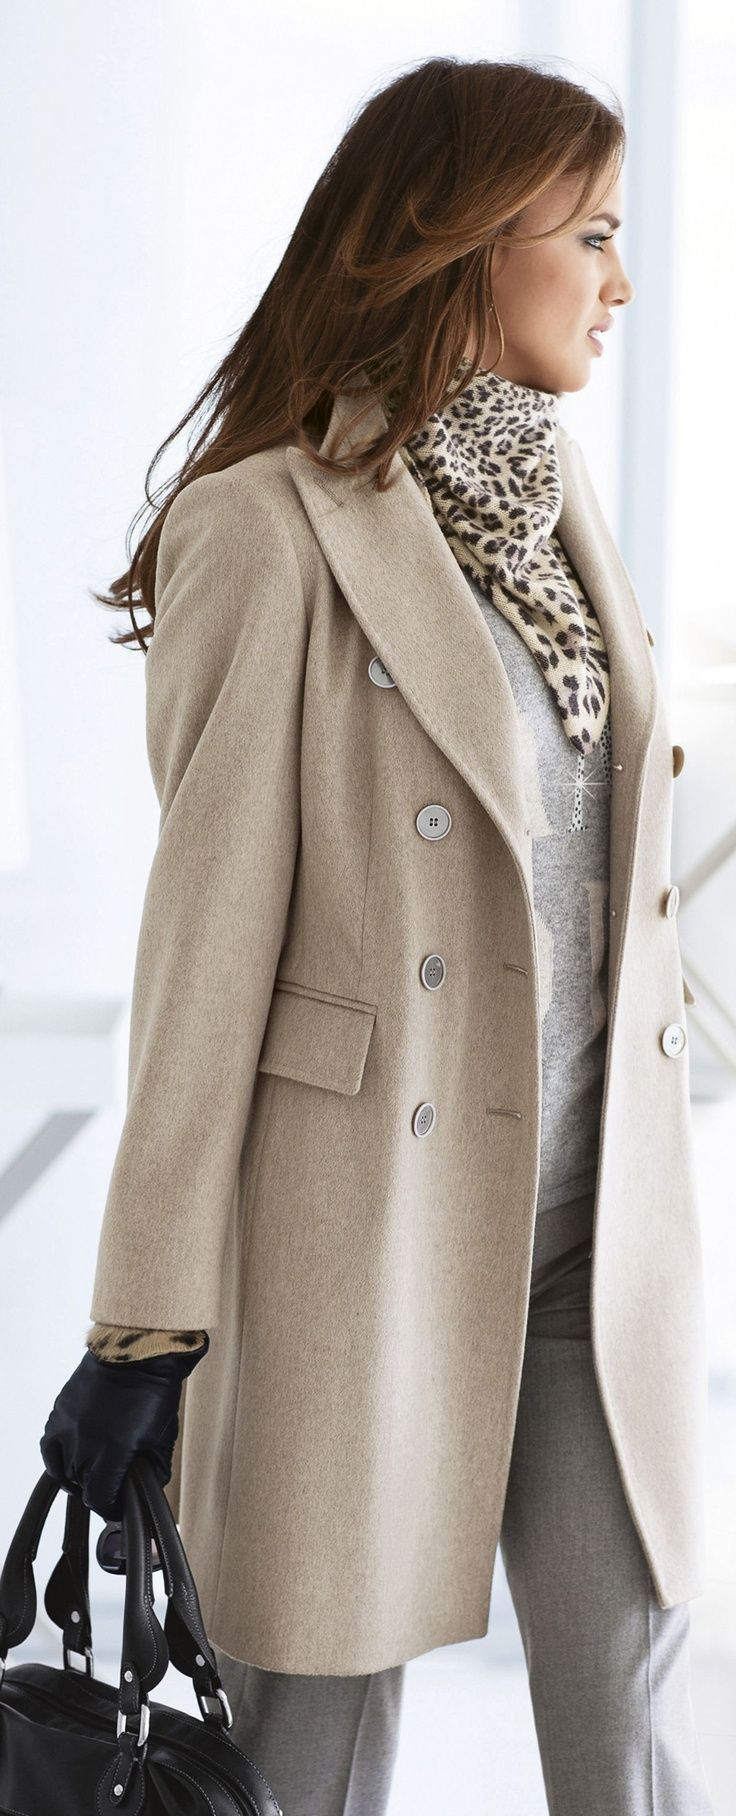 how to wear a scarf with a coat